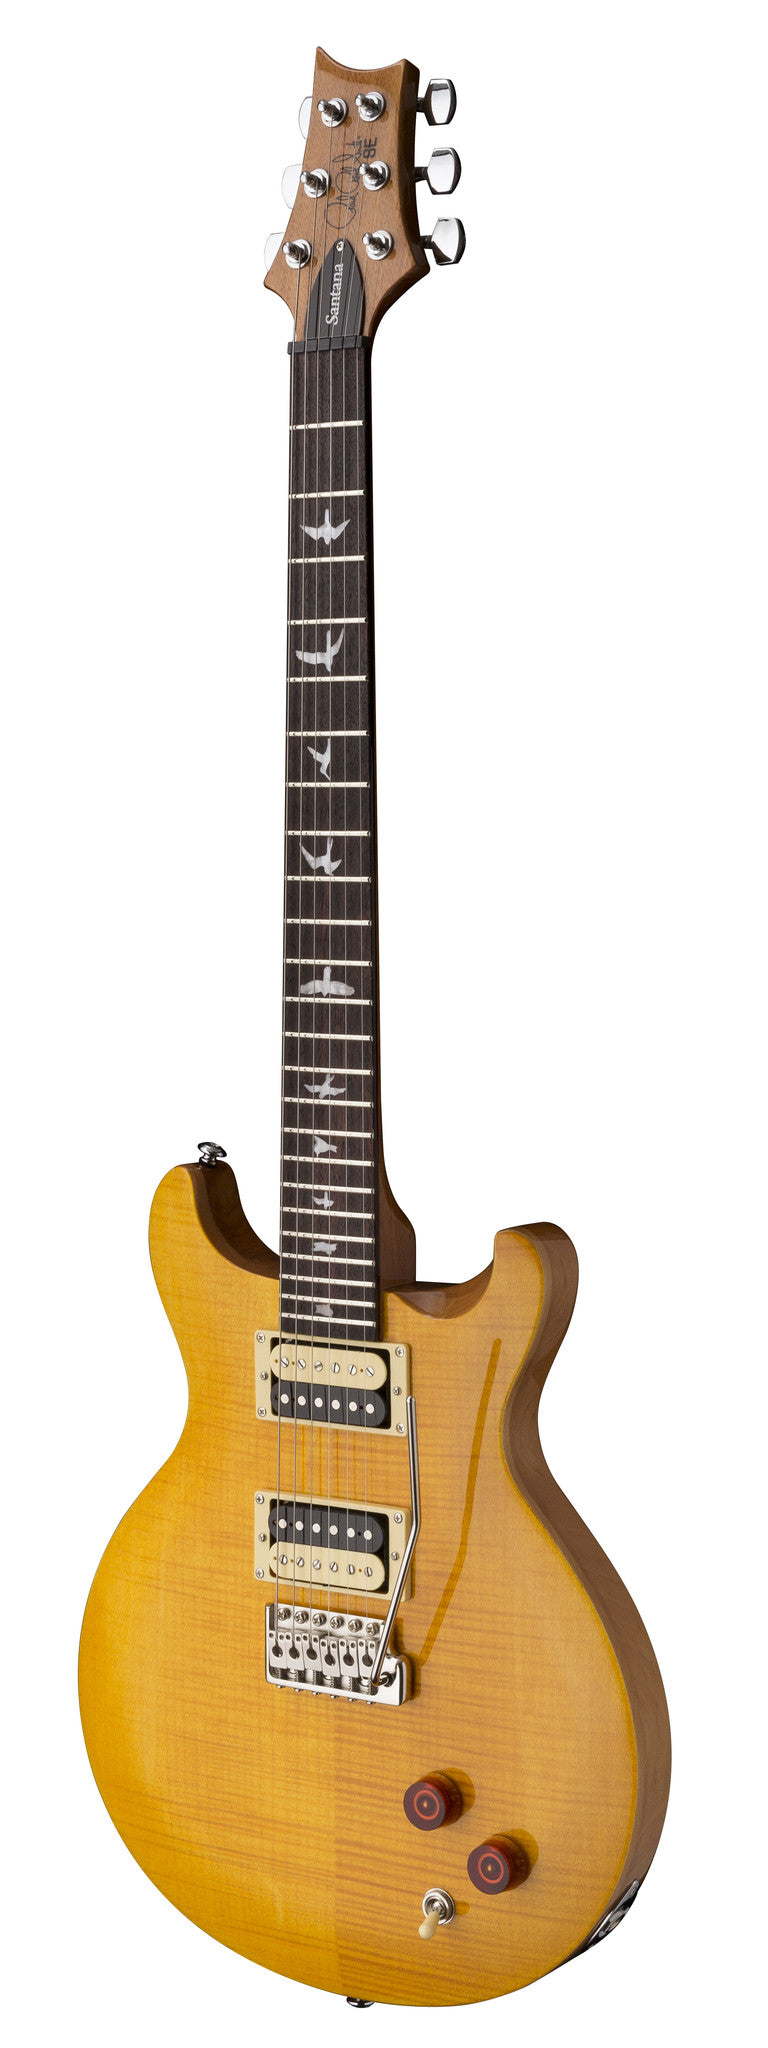 Paul Reed Smith SE Santana Yellow